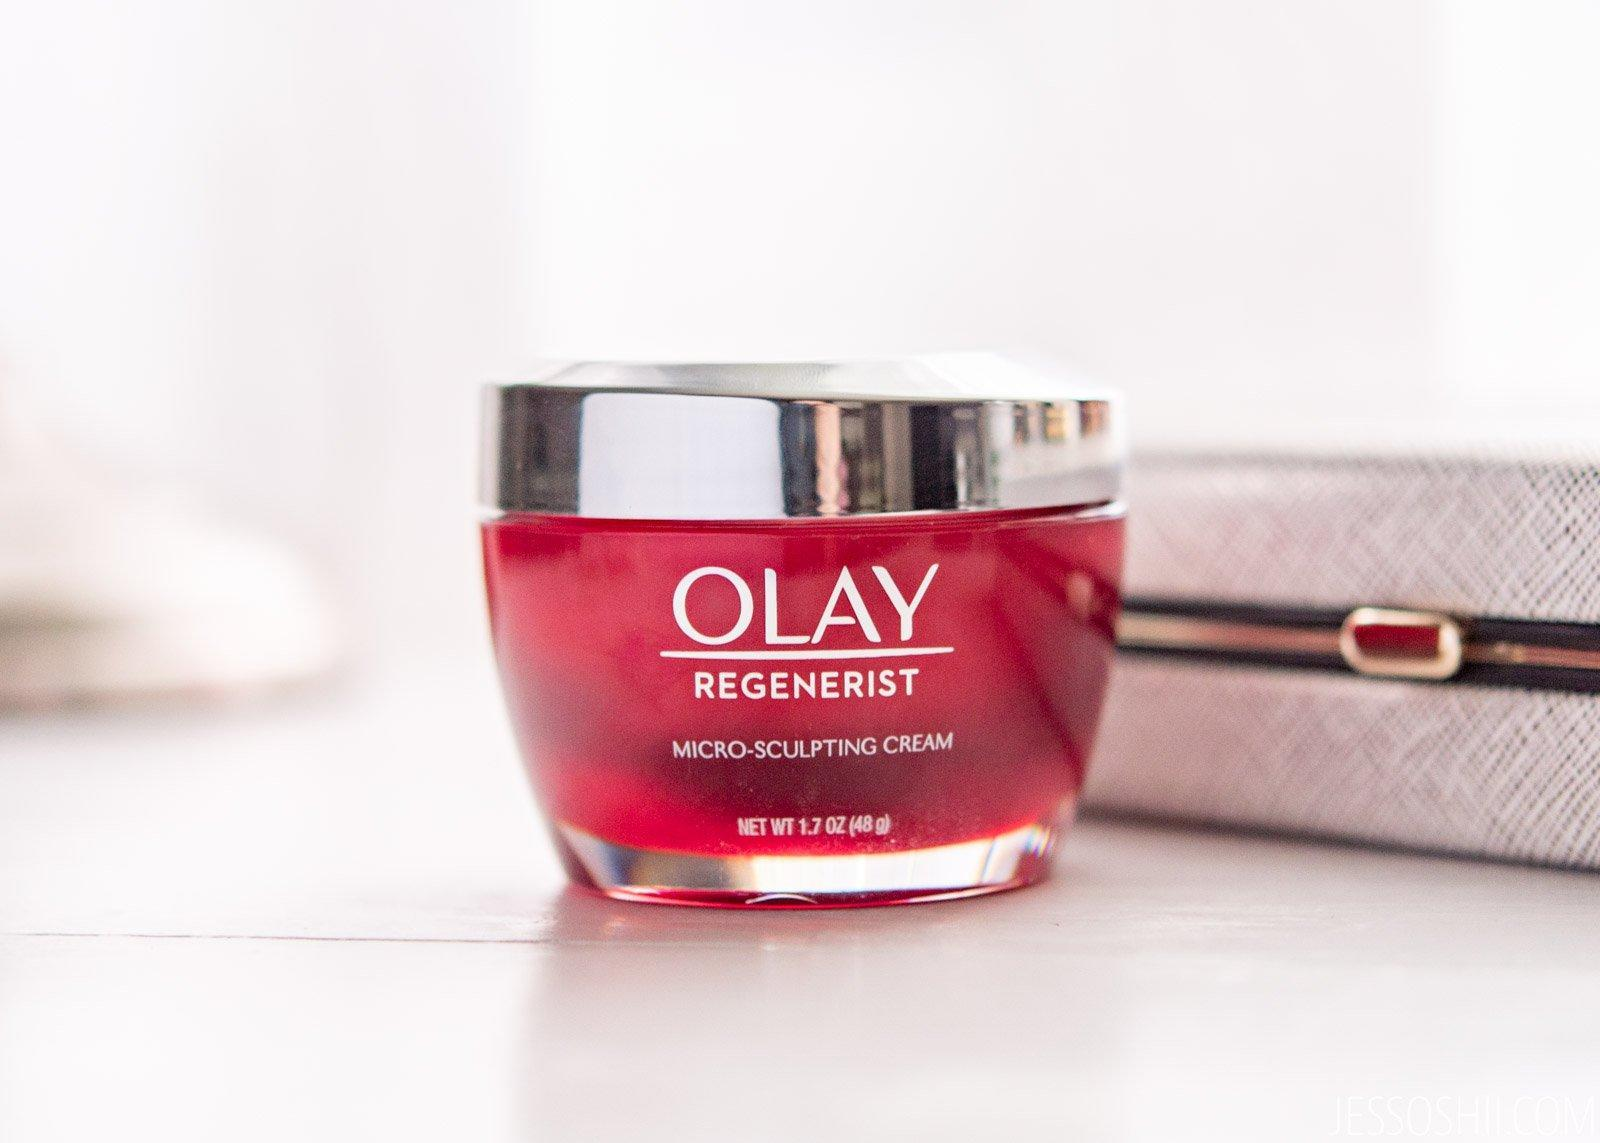 Olay Regenerist Micro-Sculpting Cream (ảnh: Internet)